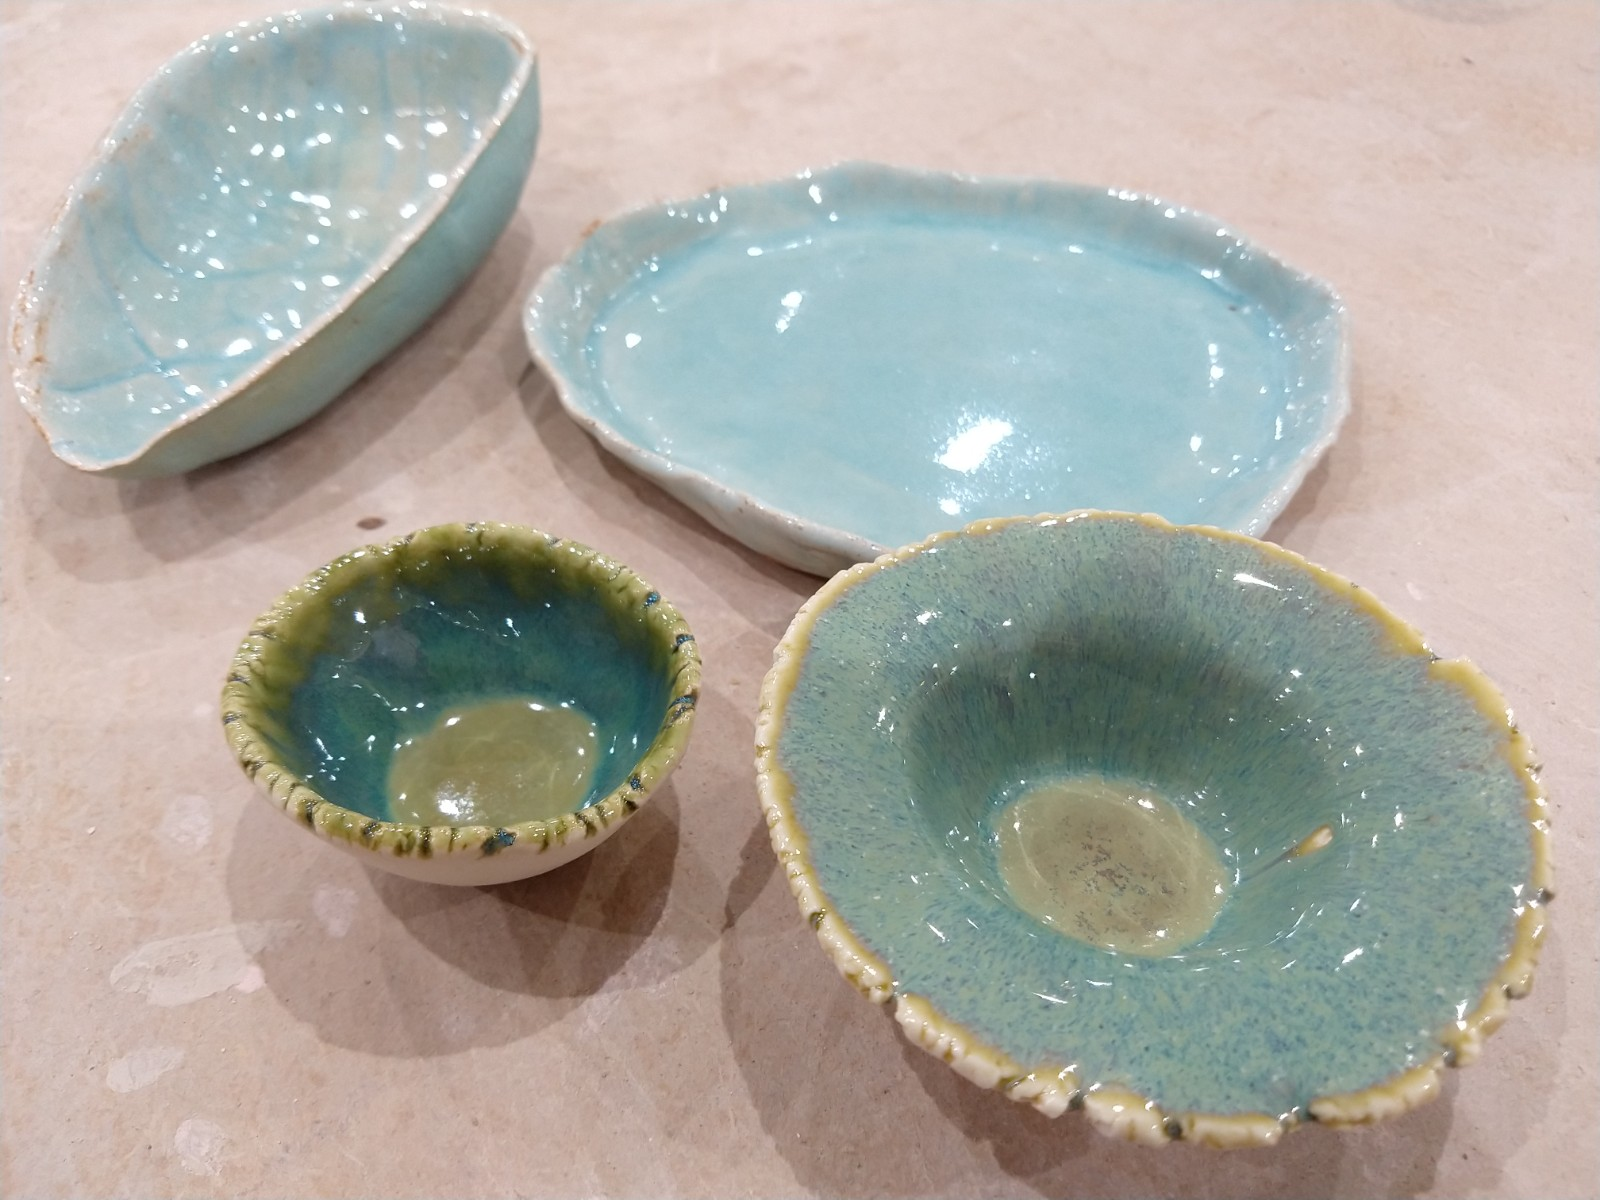 Hand formed dishes